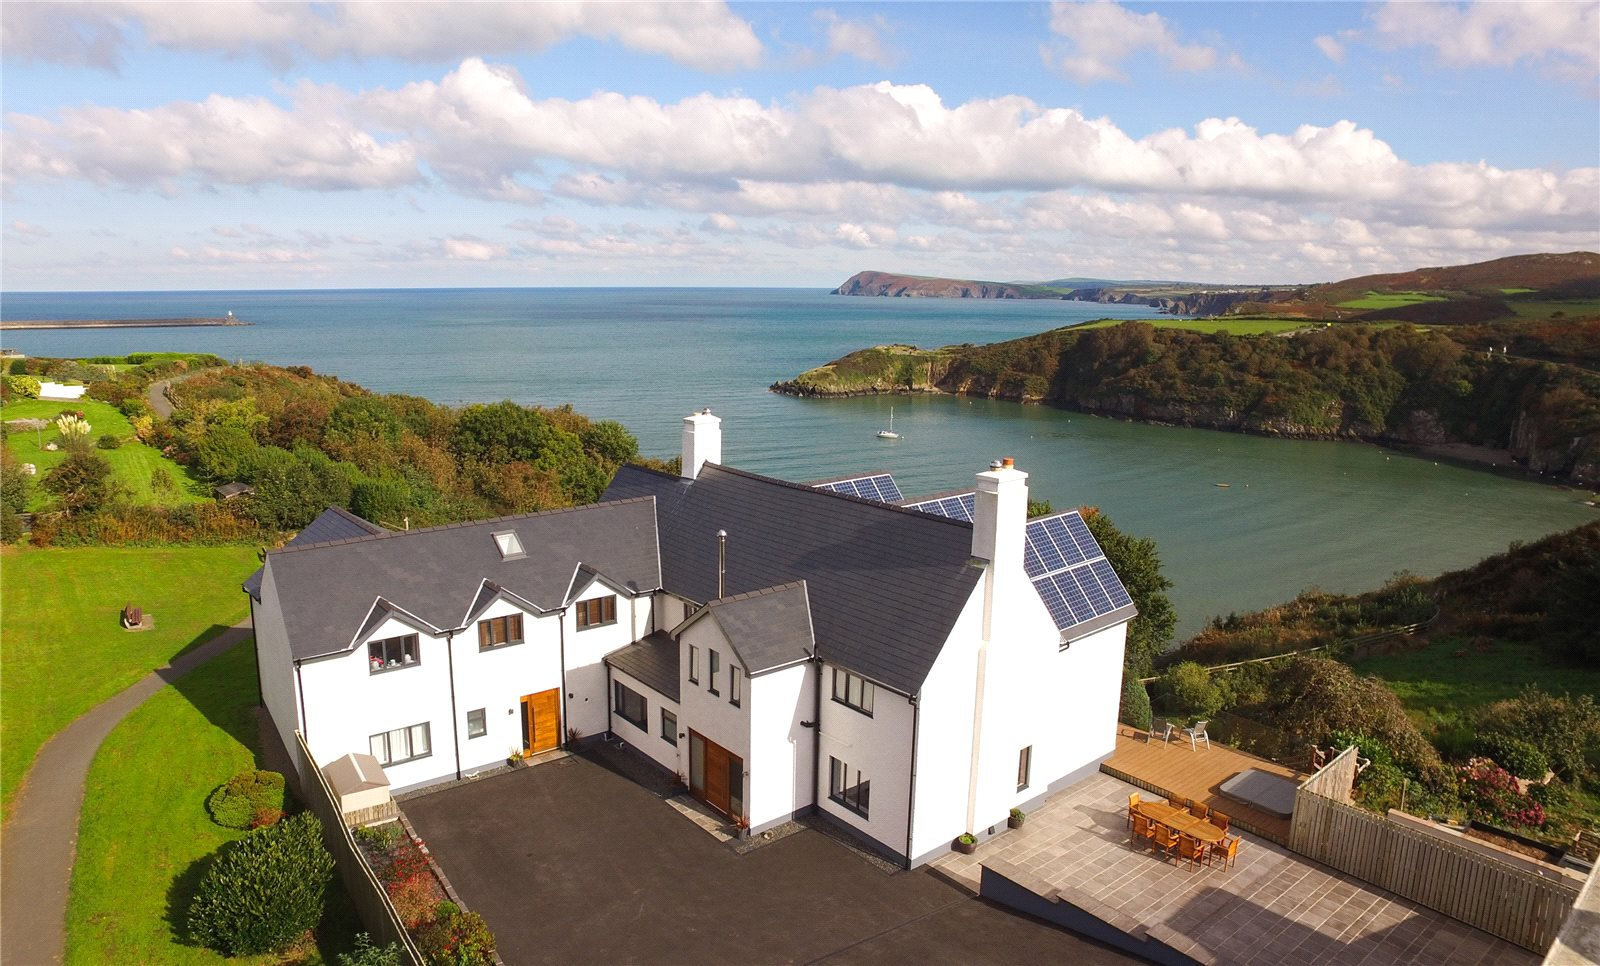 coastal homes property houses Zoopla for sale